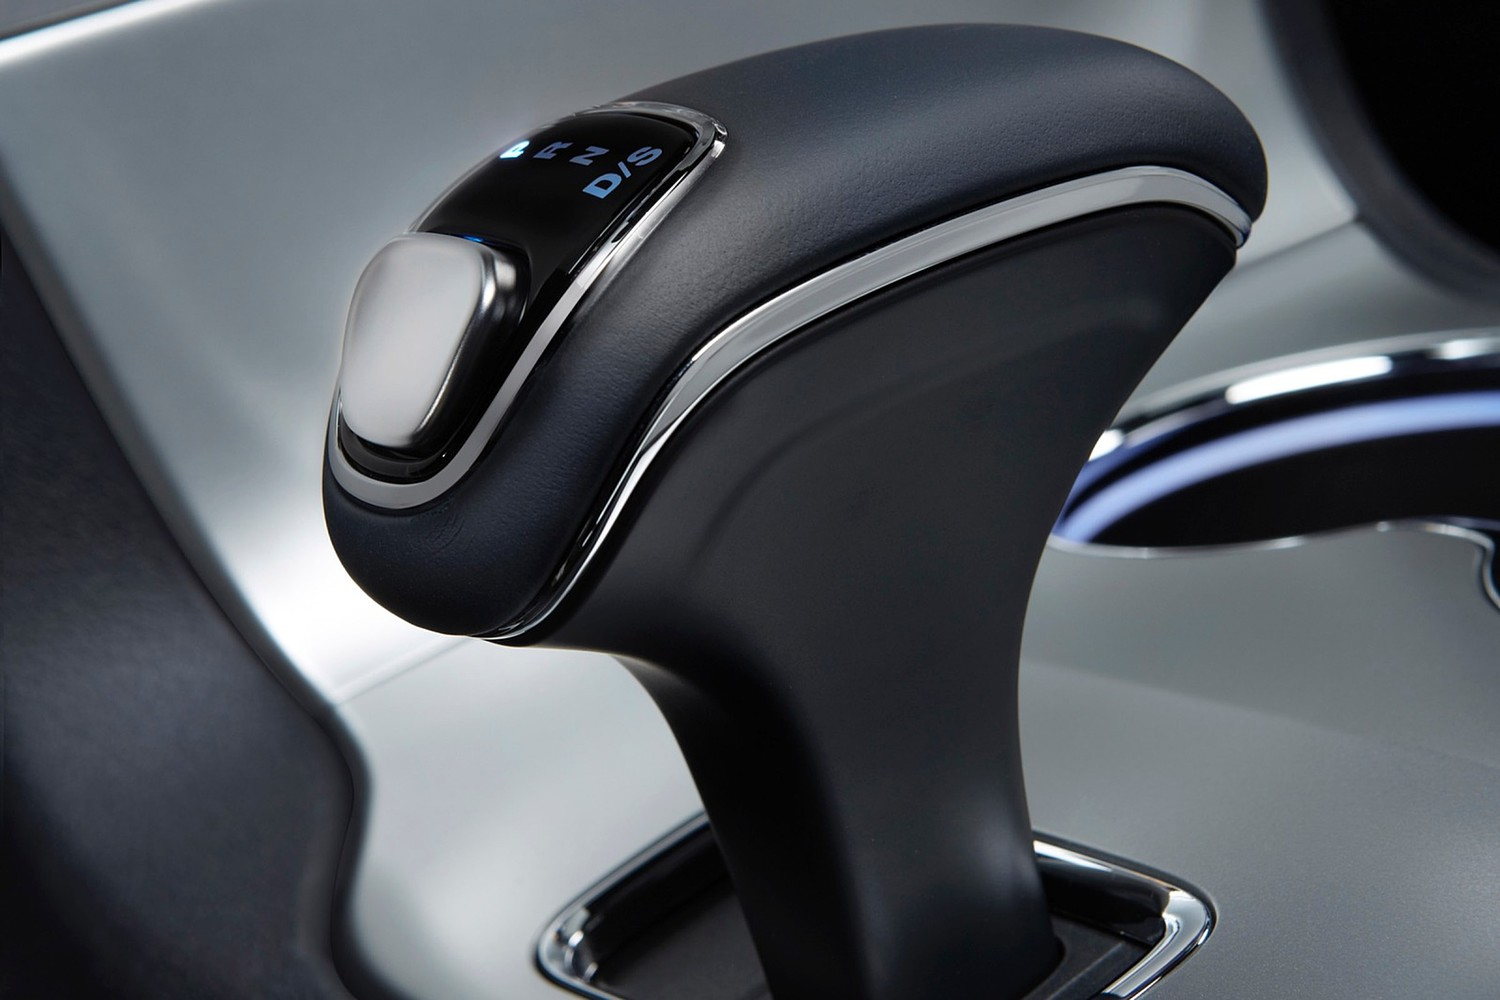 Jeep Grand Cherokee Limited 4dr SUV Shifter (2015 model year shown)